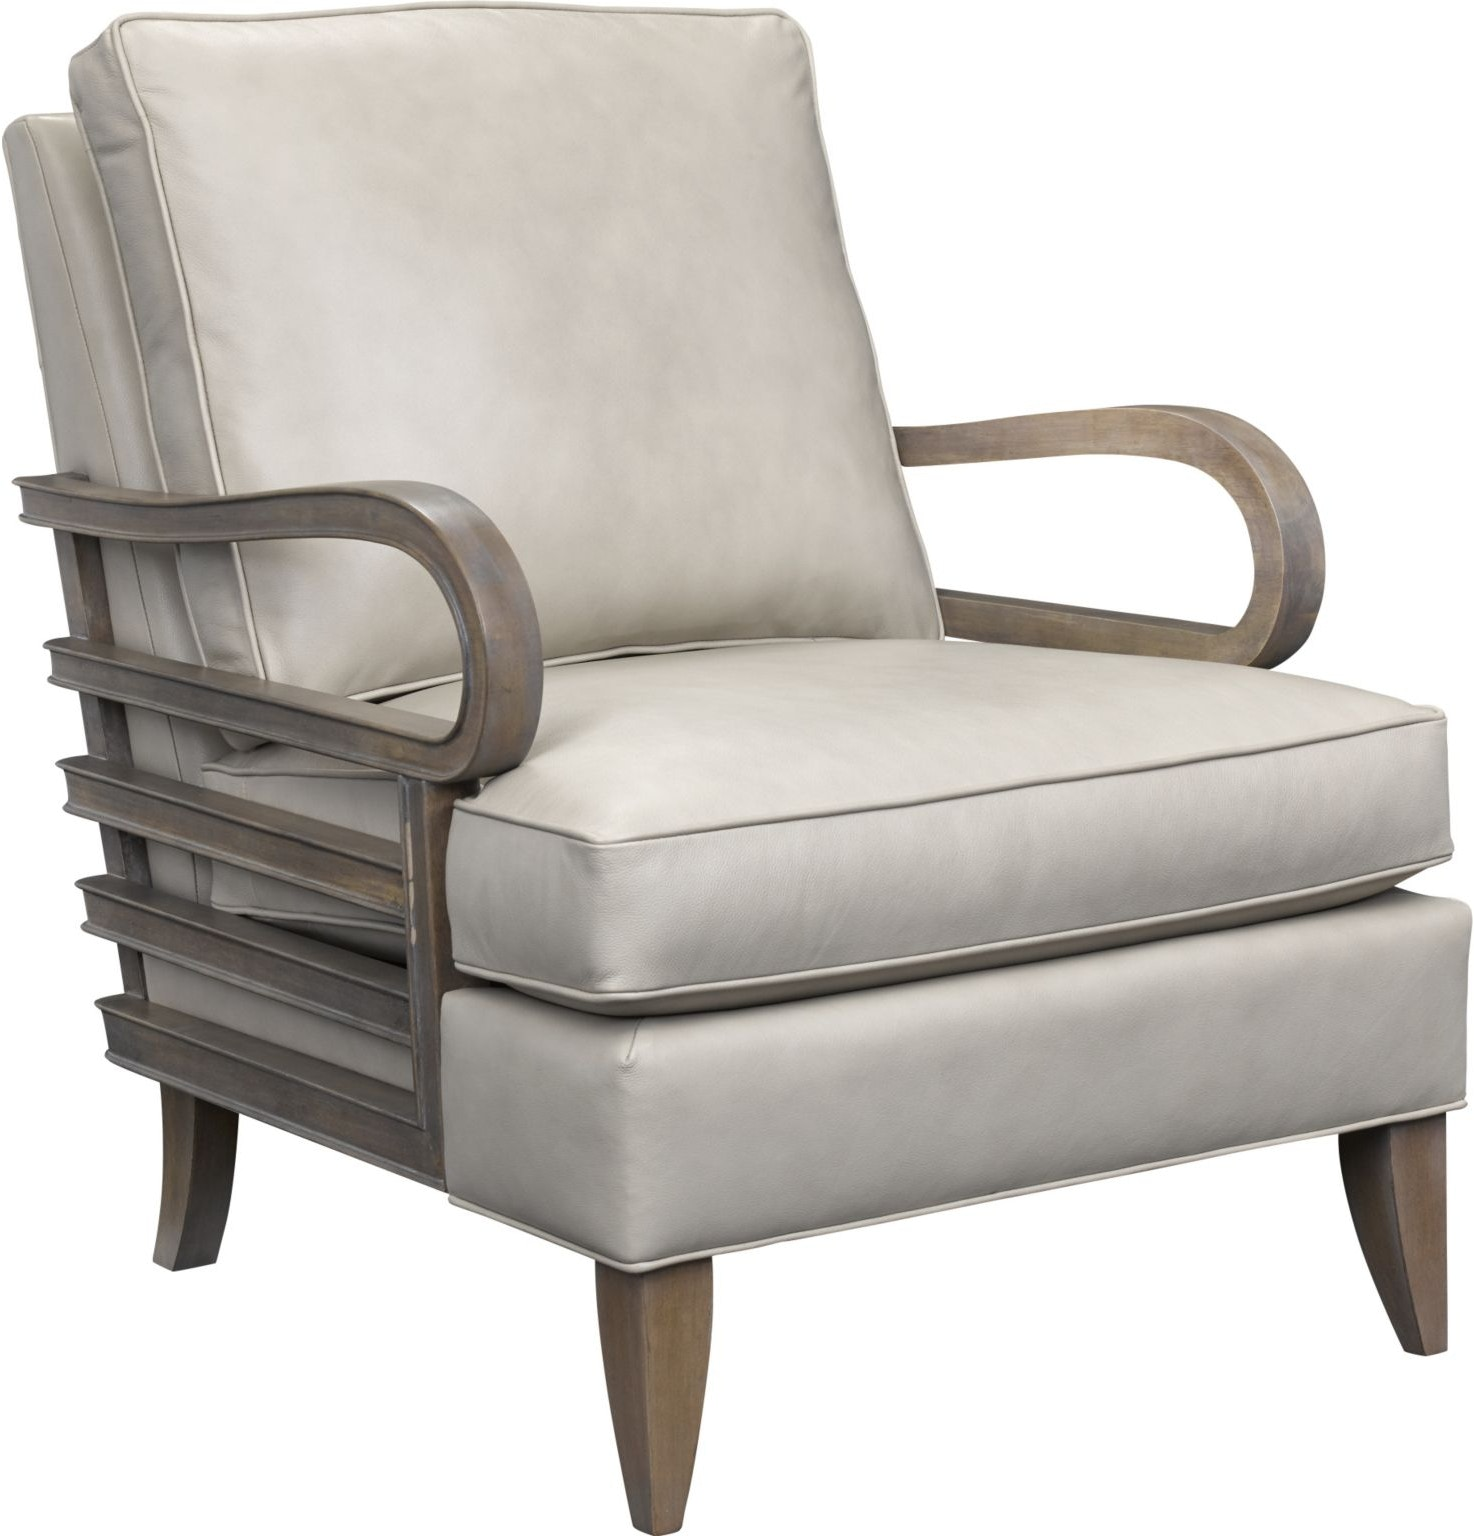 Thomasville Living Room Kirk Chair HS2614 15